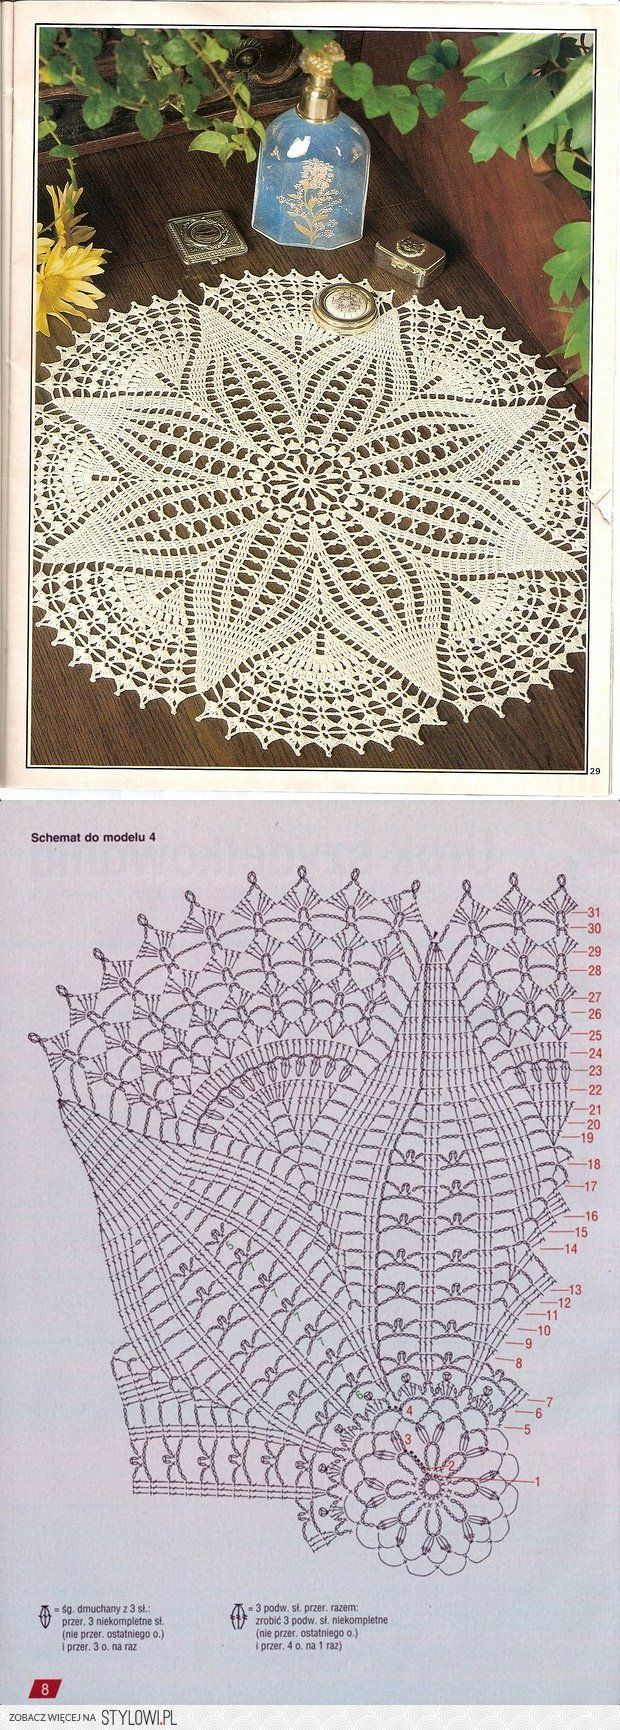 Http Stylowipl 27801533 Patrones Pinterest Amor Crochet Doily Diagram 2 Patterns Pin Stitches